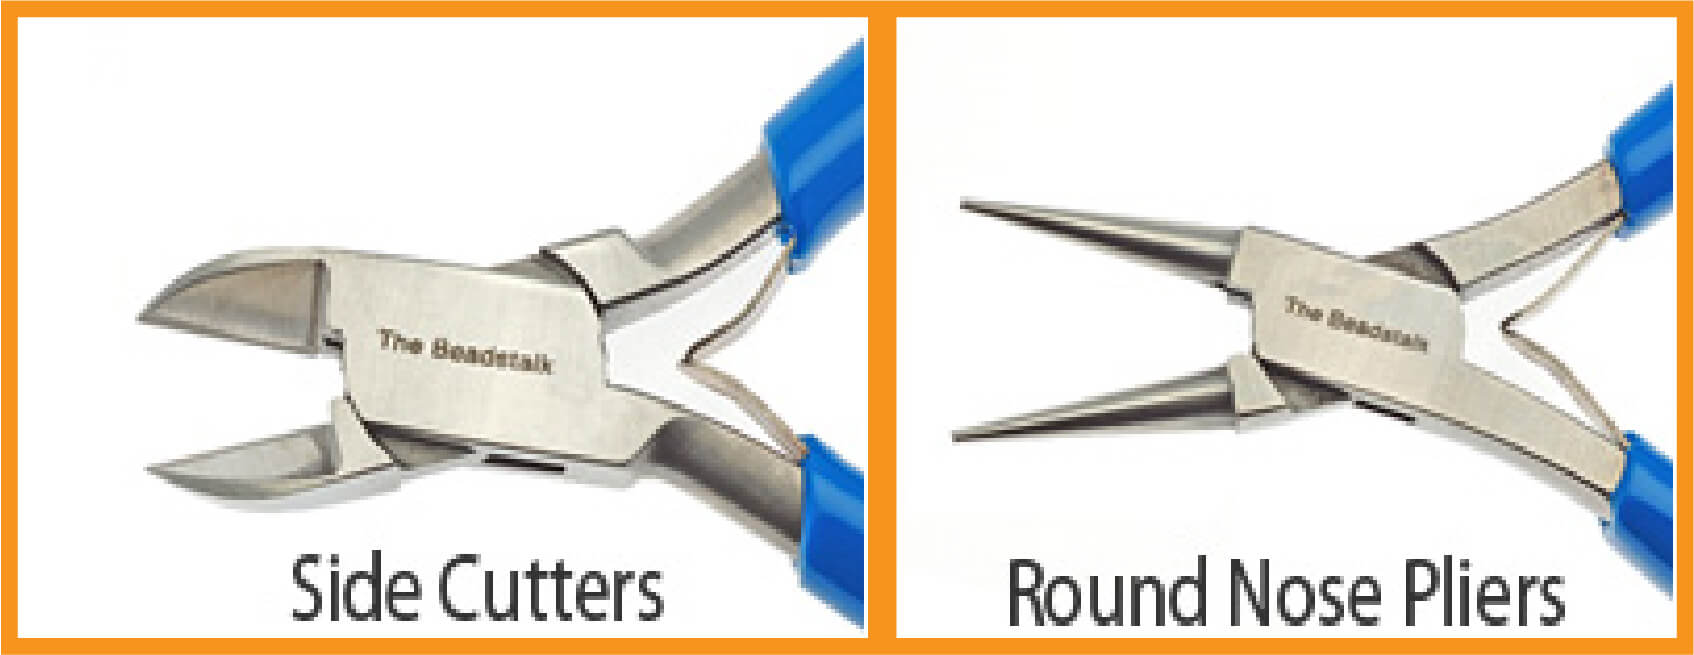 Side cutters and round nose pliers